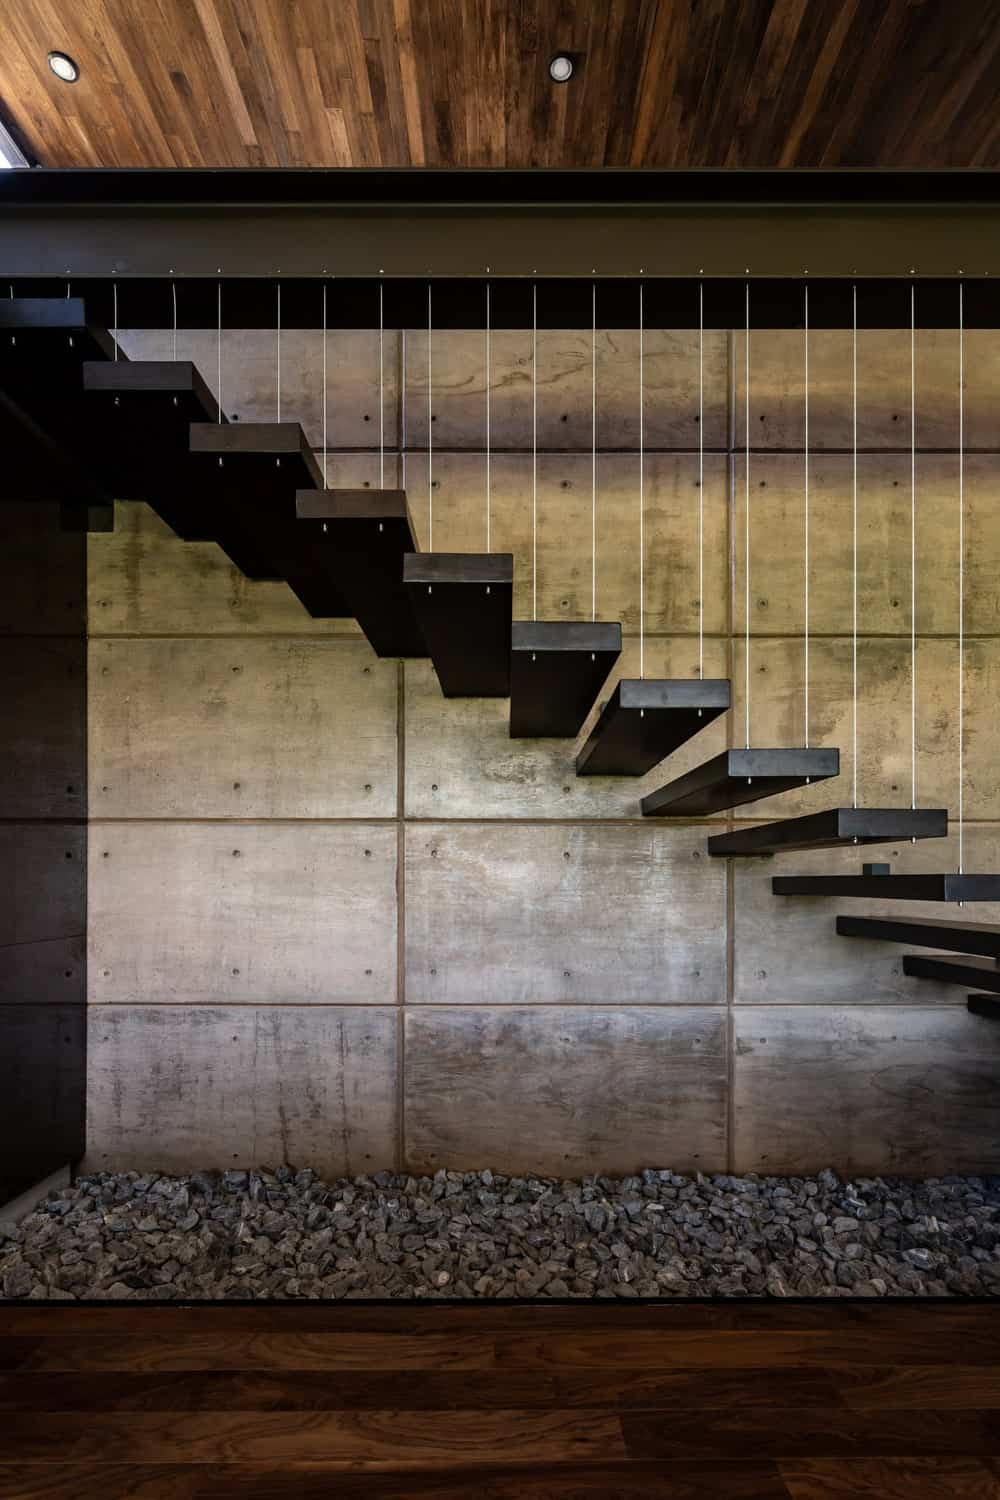 This closer look at the modern floating steps of the staircase showcases the bed of gravel underneath.